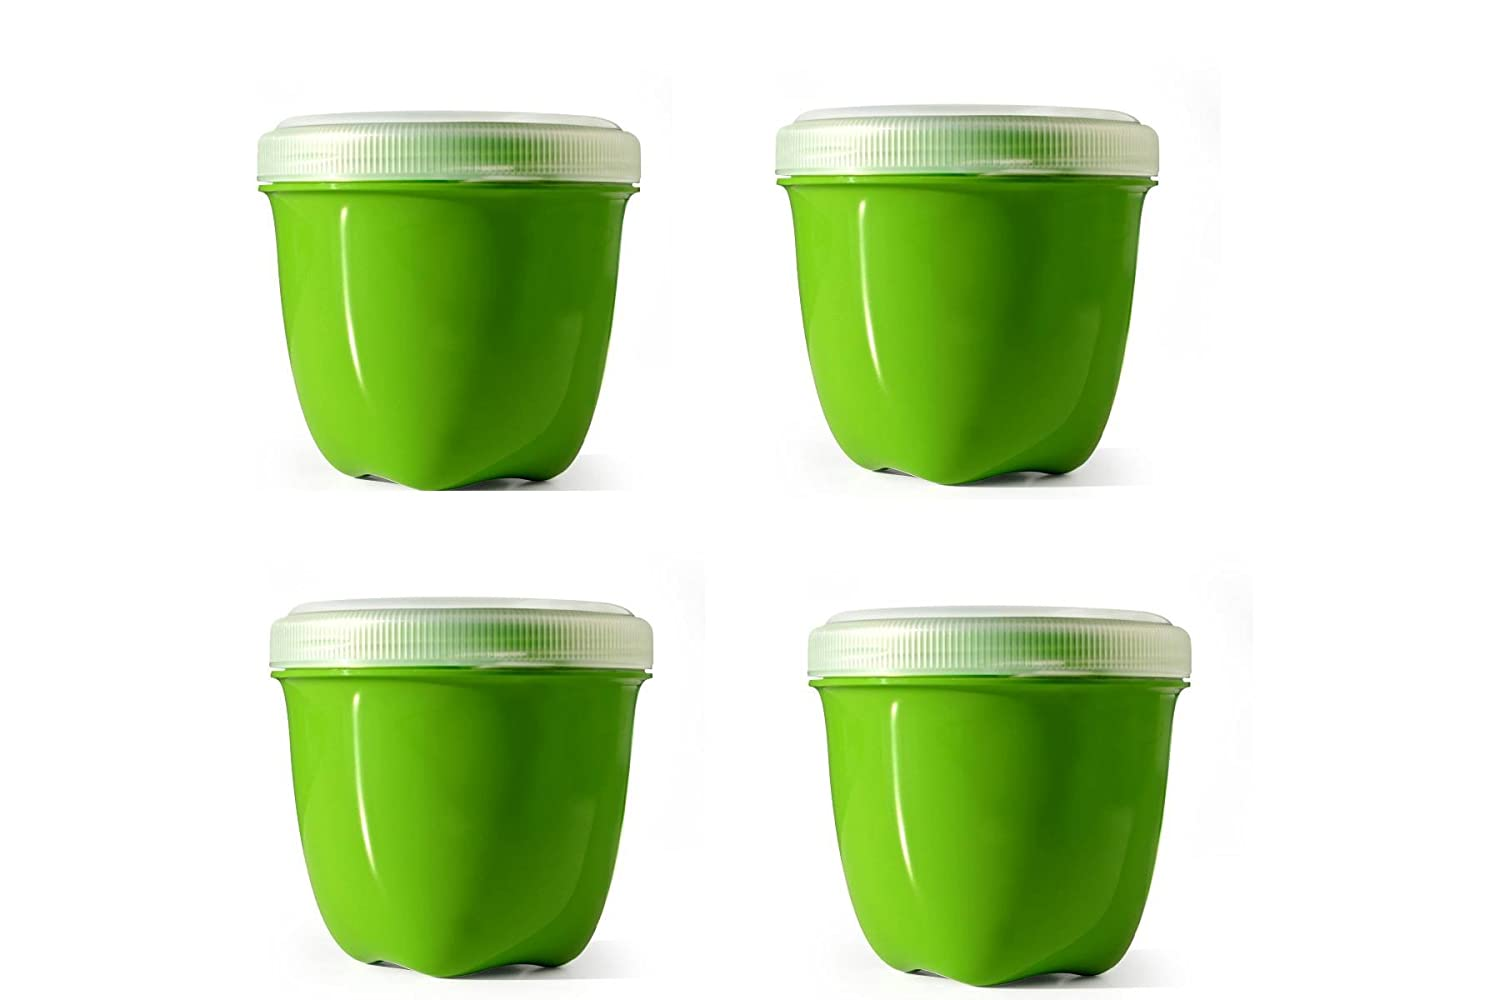 Preserve Food Storage Container, 8 Ounce/Mini, Made from Recycled Plastic, Set of 4, Apple Green